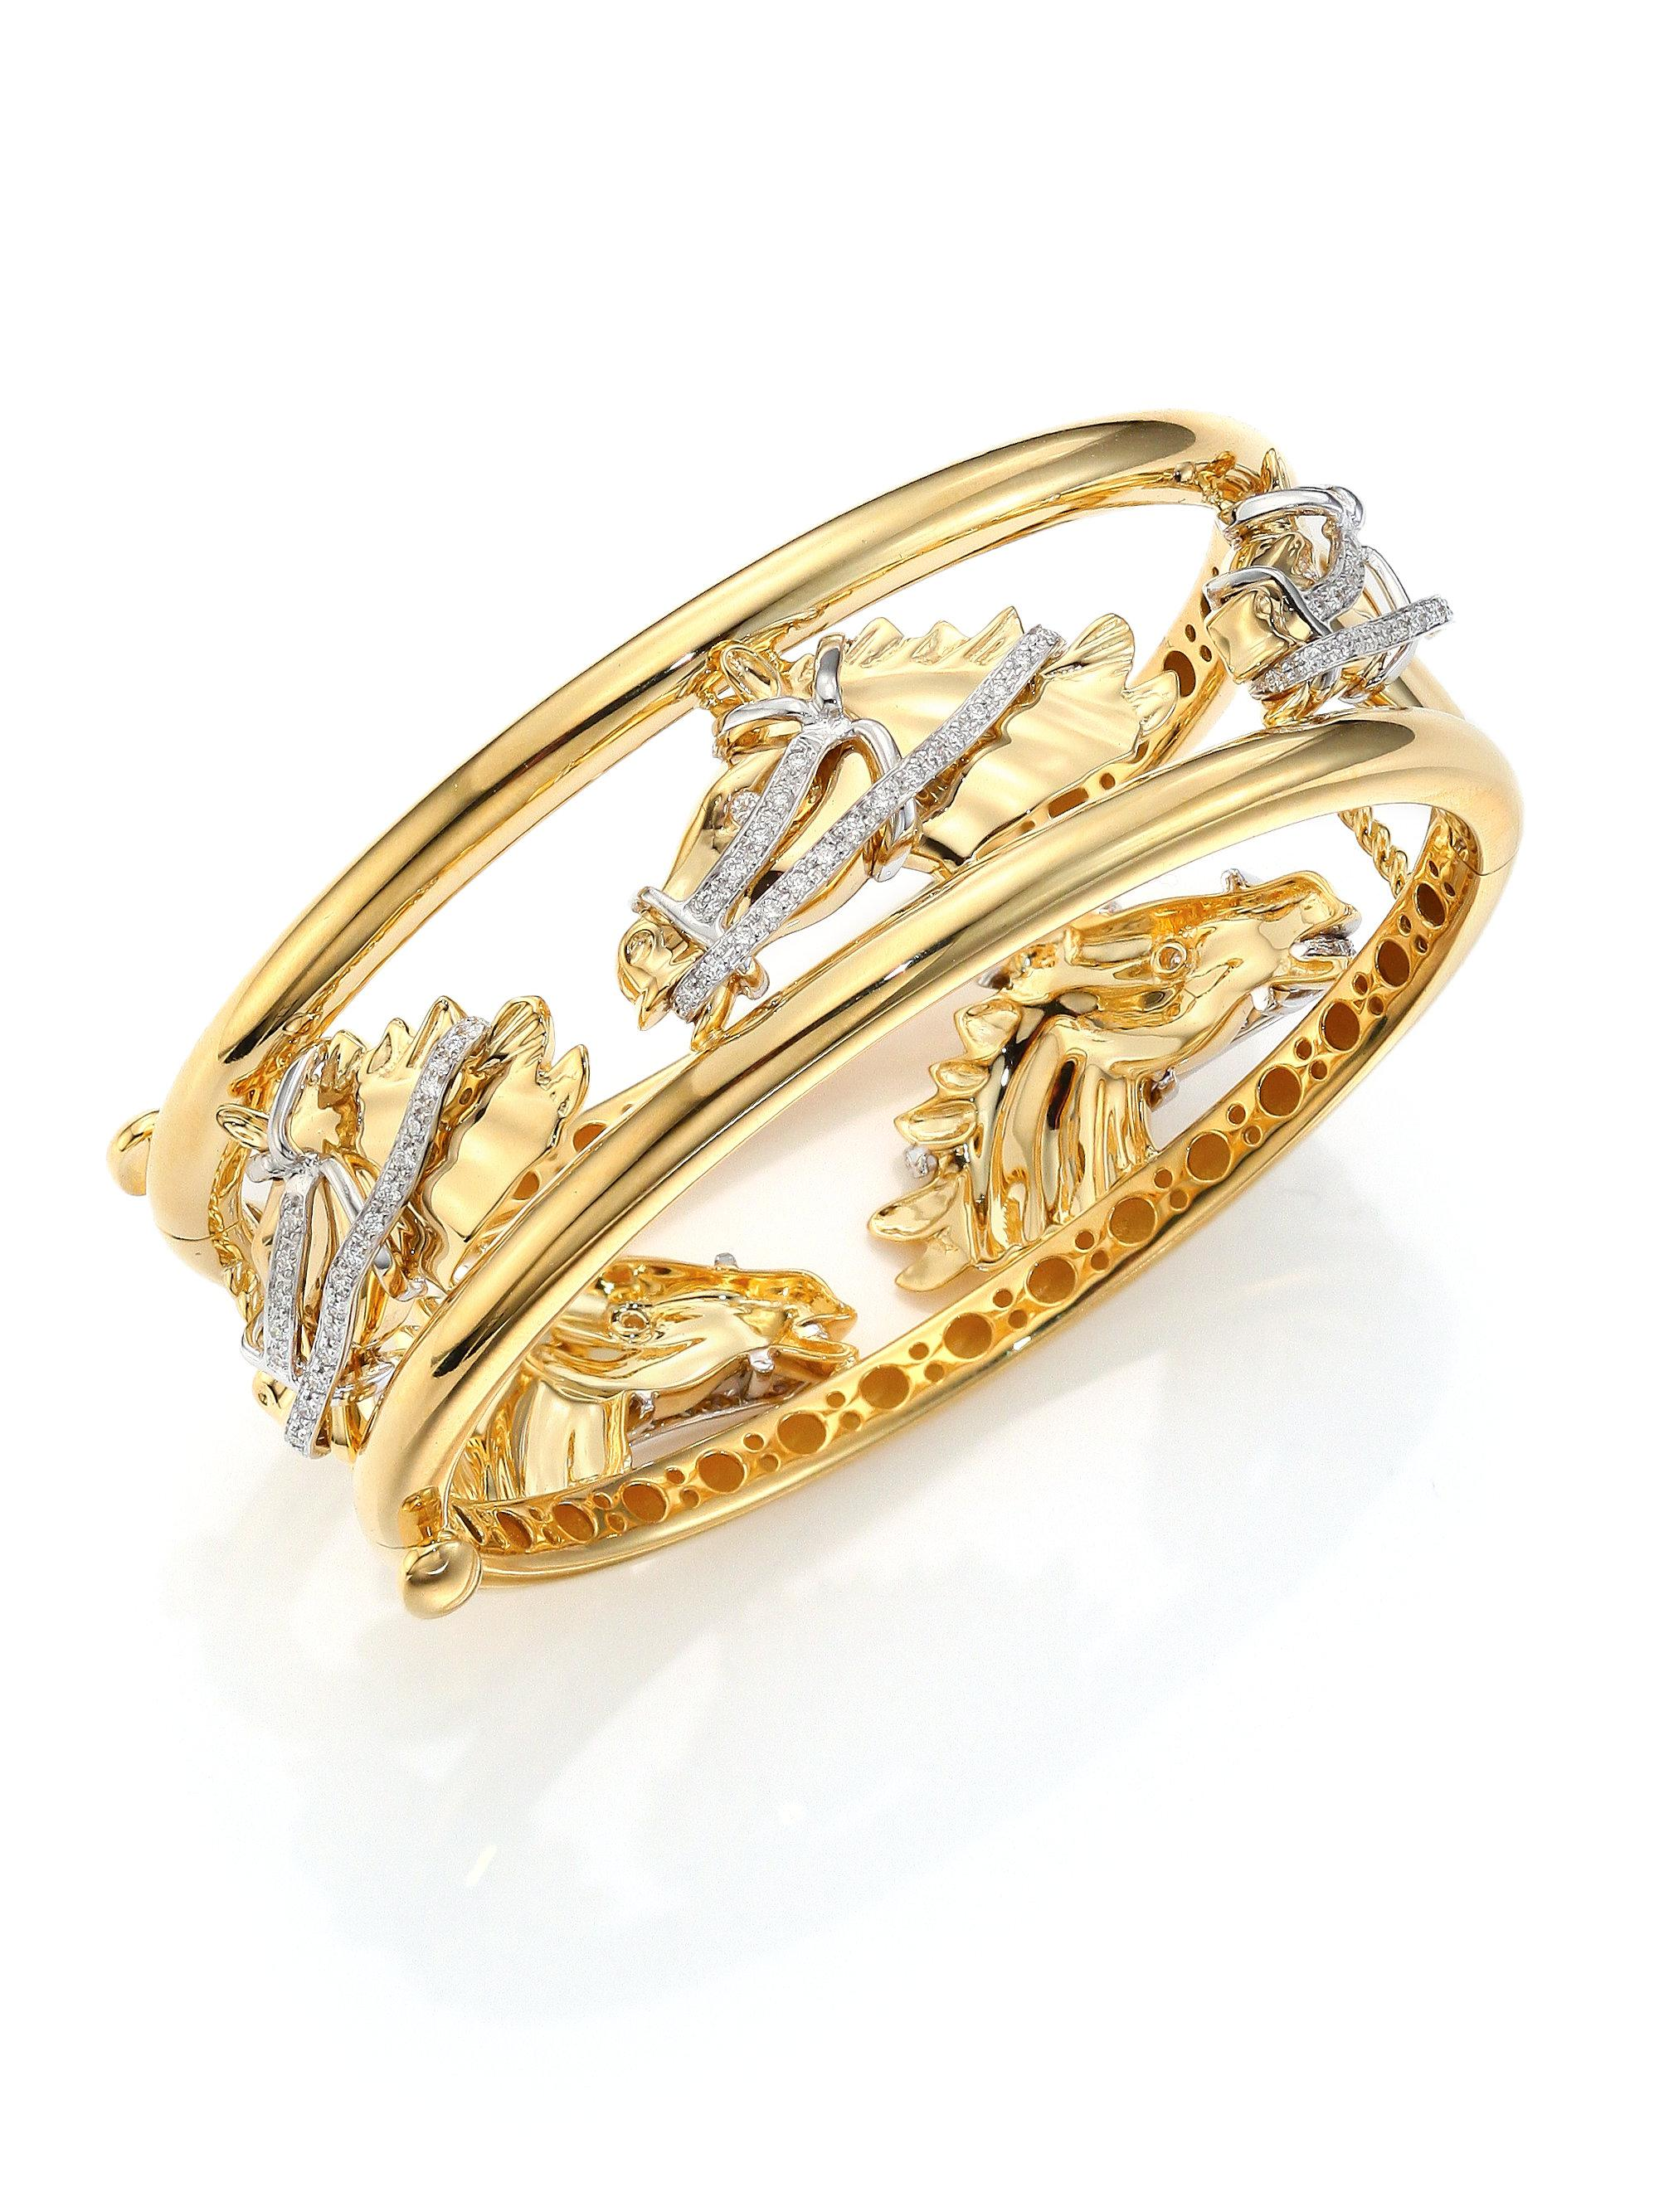 mysterious bangles sml gold white diamond yellow products bangle bracelet